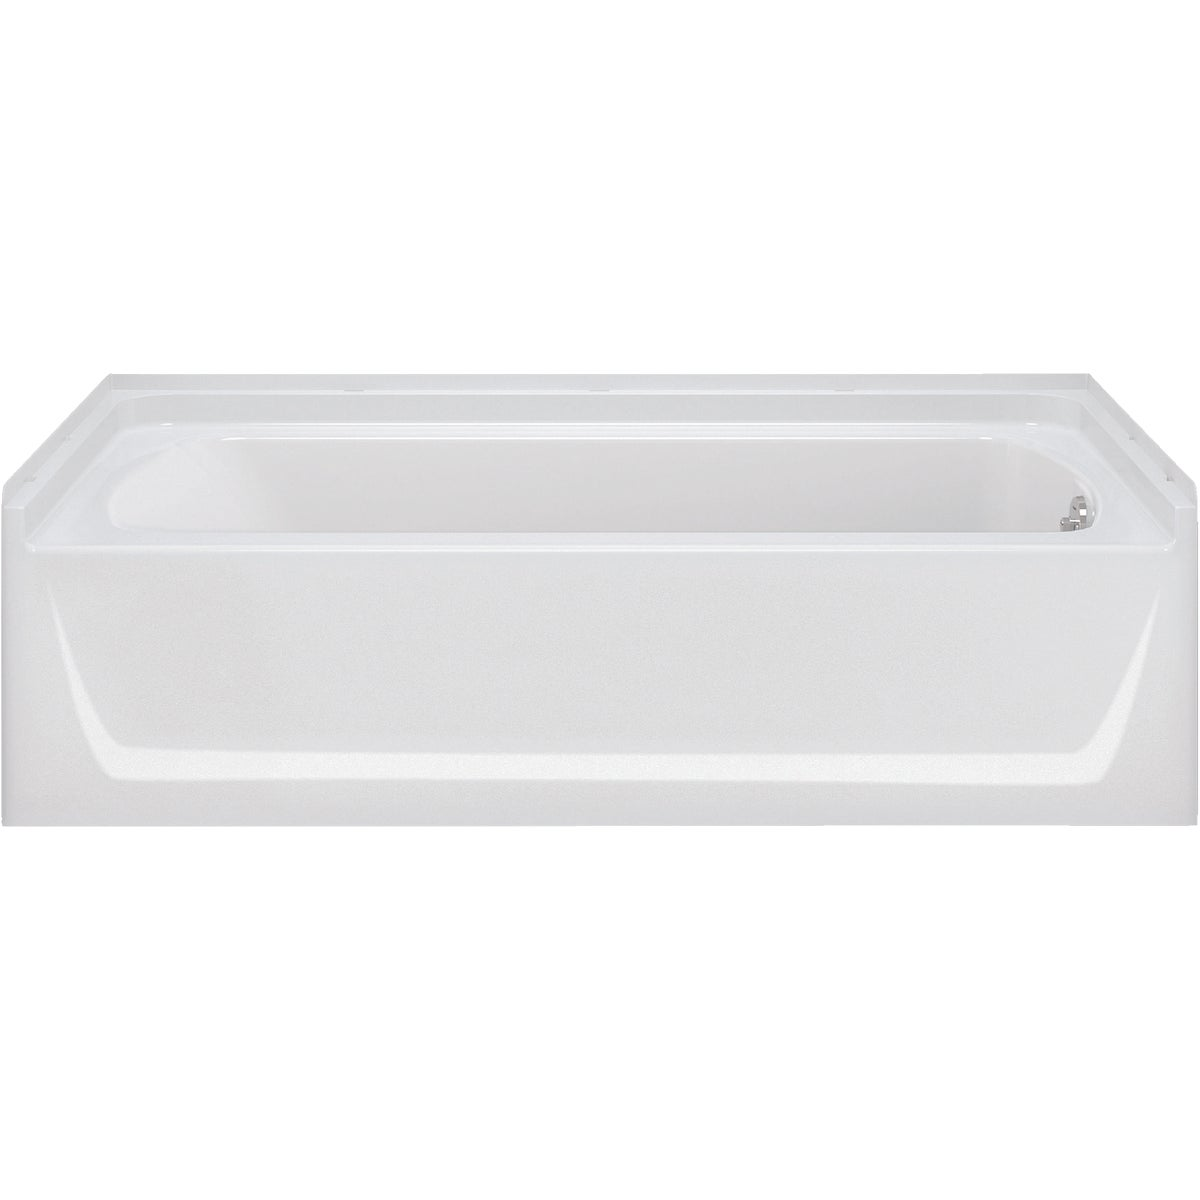 WHITE ENSEMBLE RH TUB - 71171120-0 by Sterling Pbg/vikrell